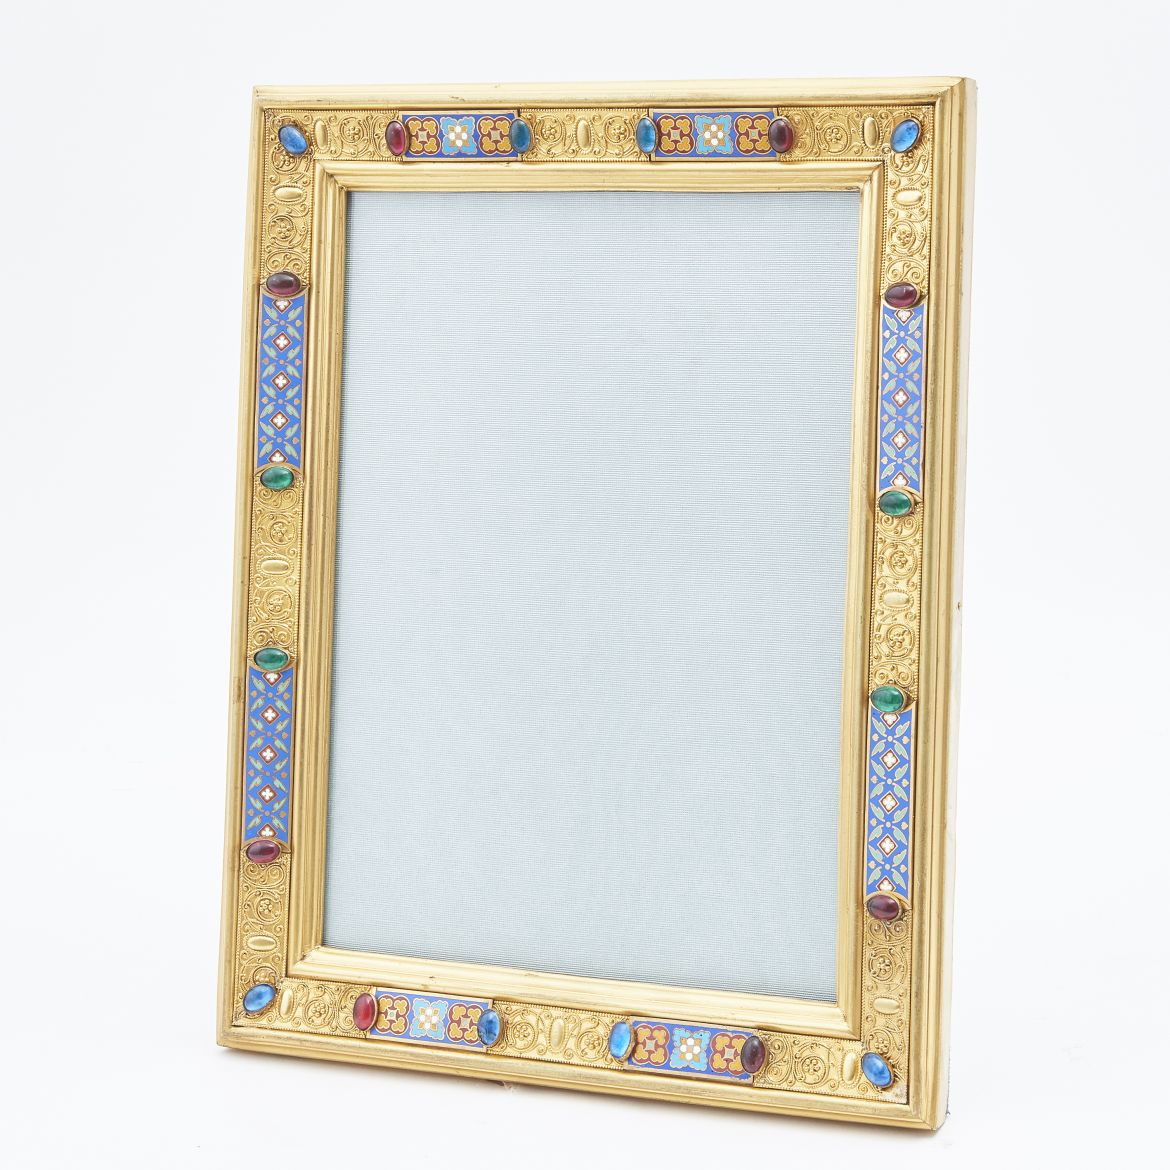 French Ormolu And Enamel Frame